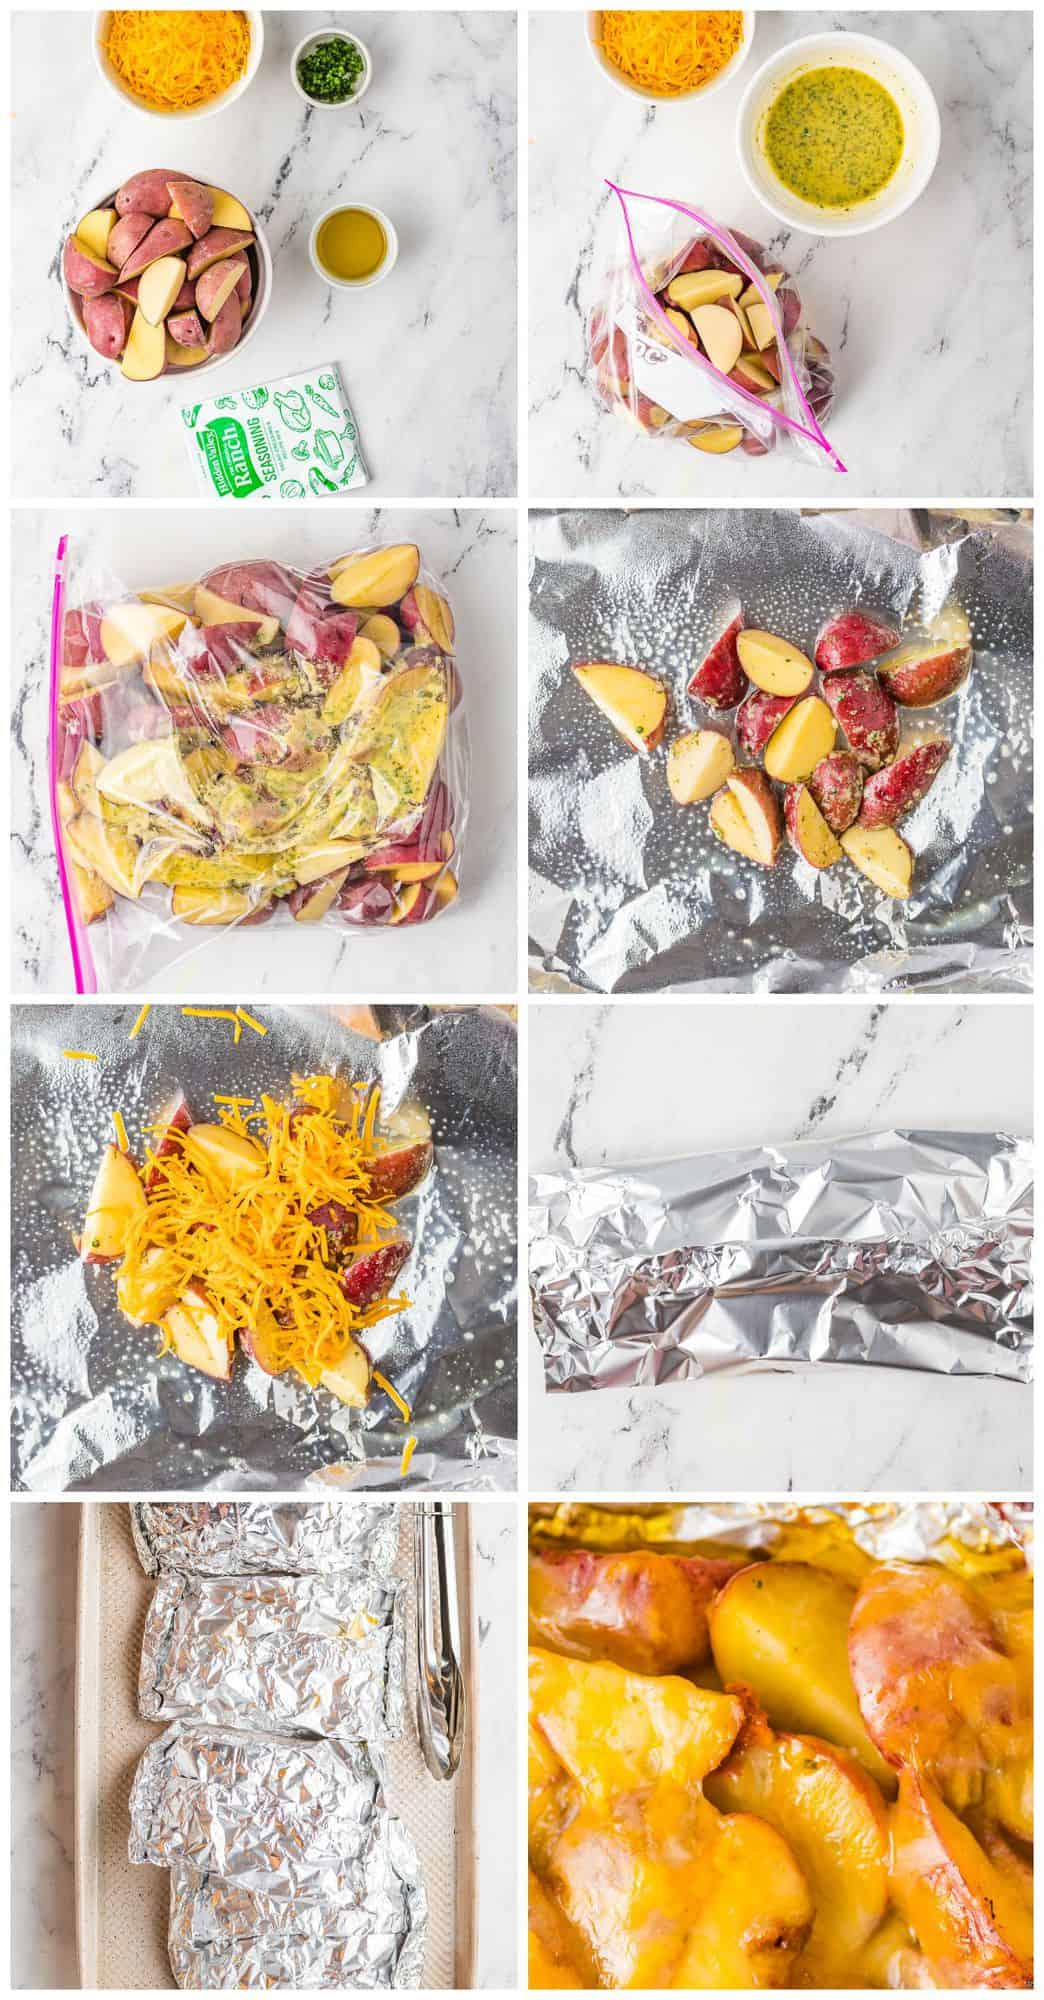 step by step photos for how to make grilled ranch potatoes